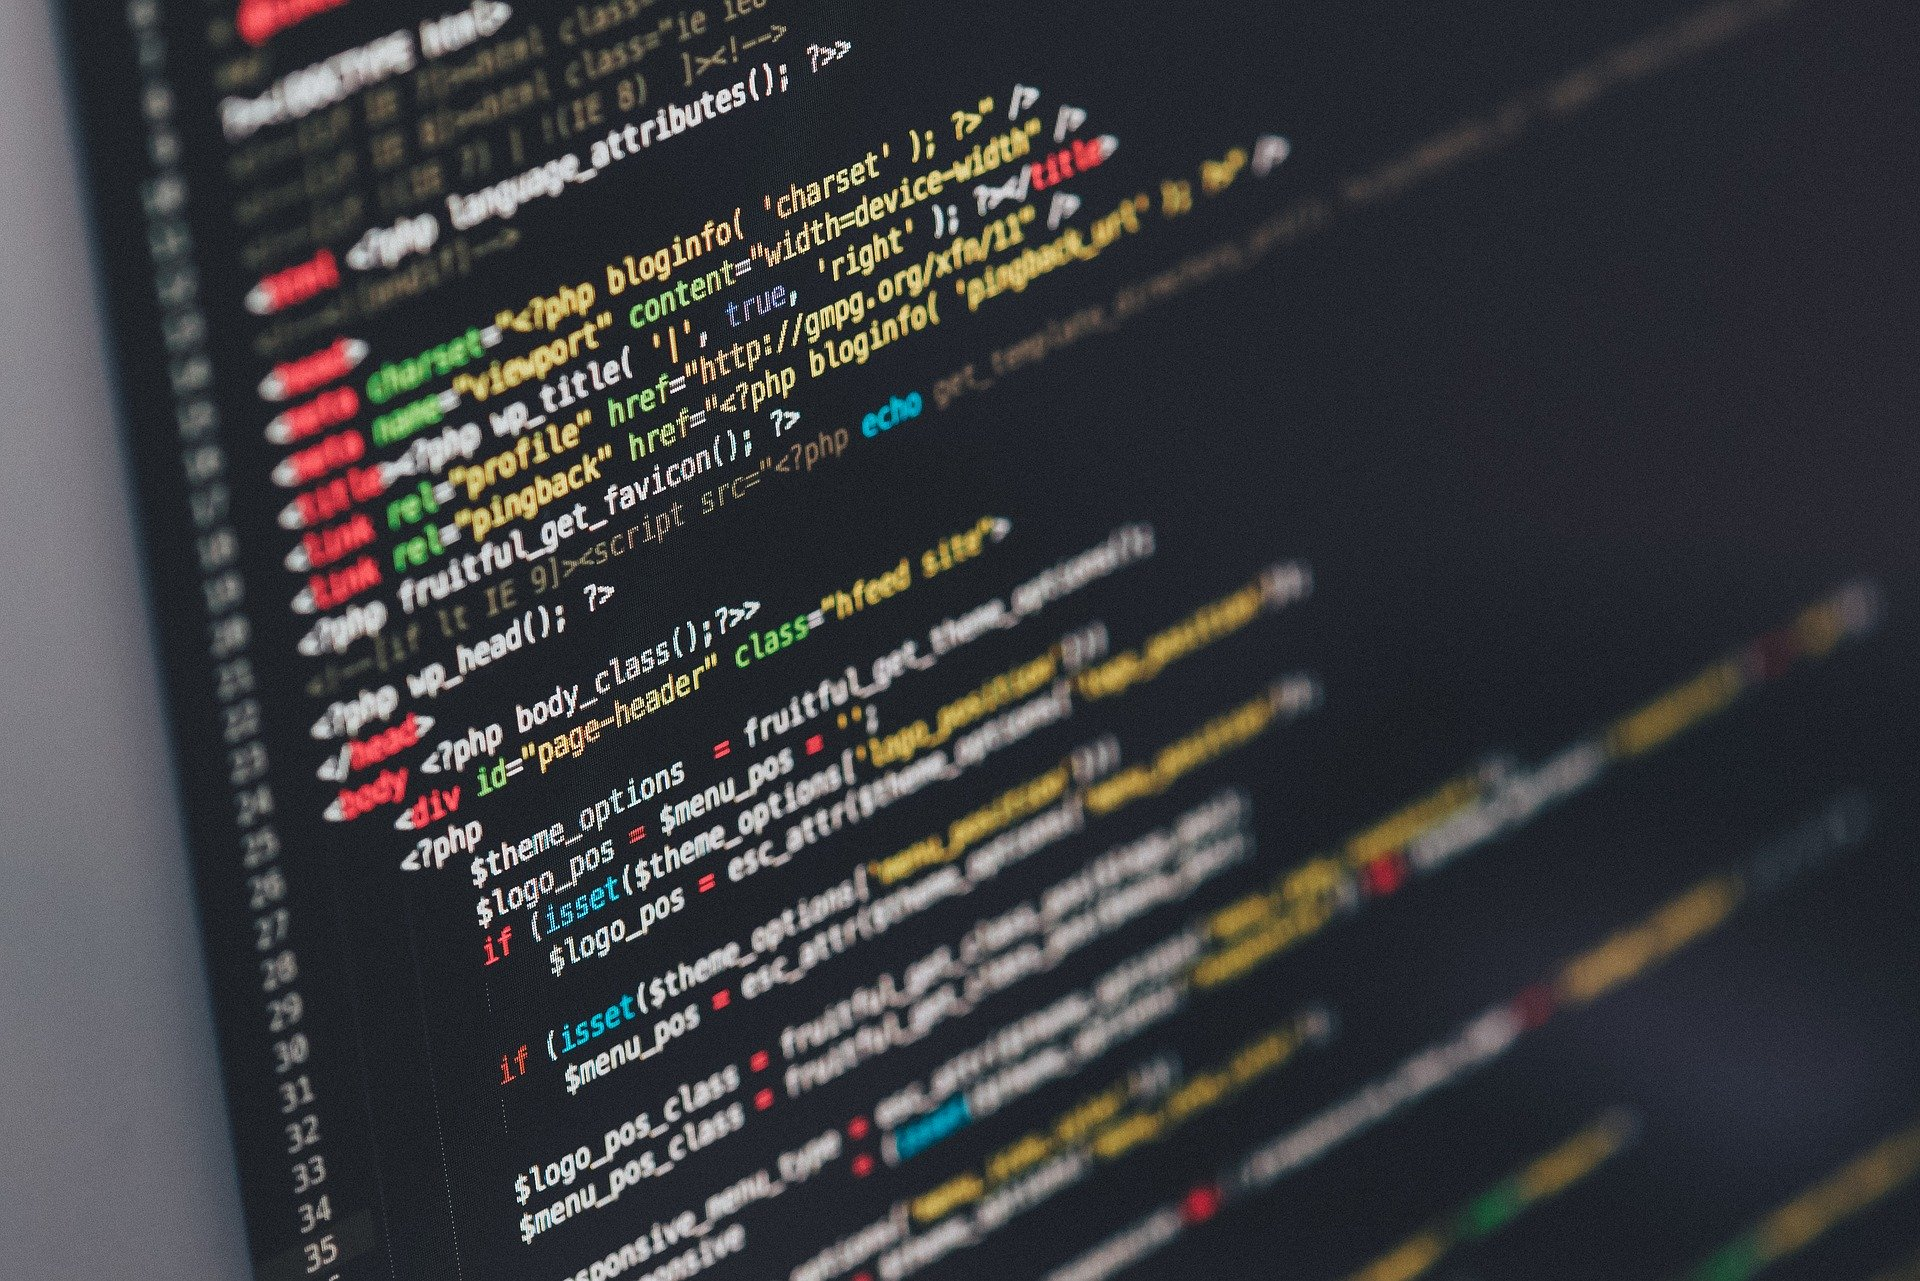 a piece of code on a computer - the language services industry will utilise new technology in 2020.